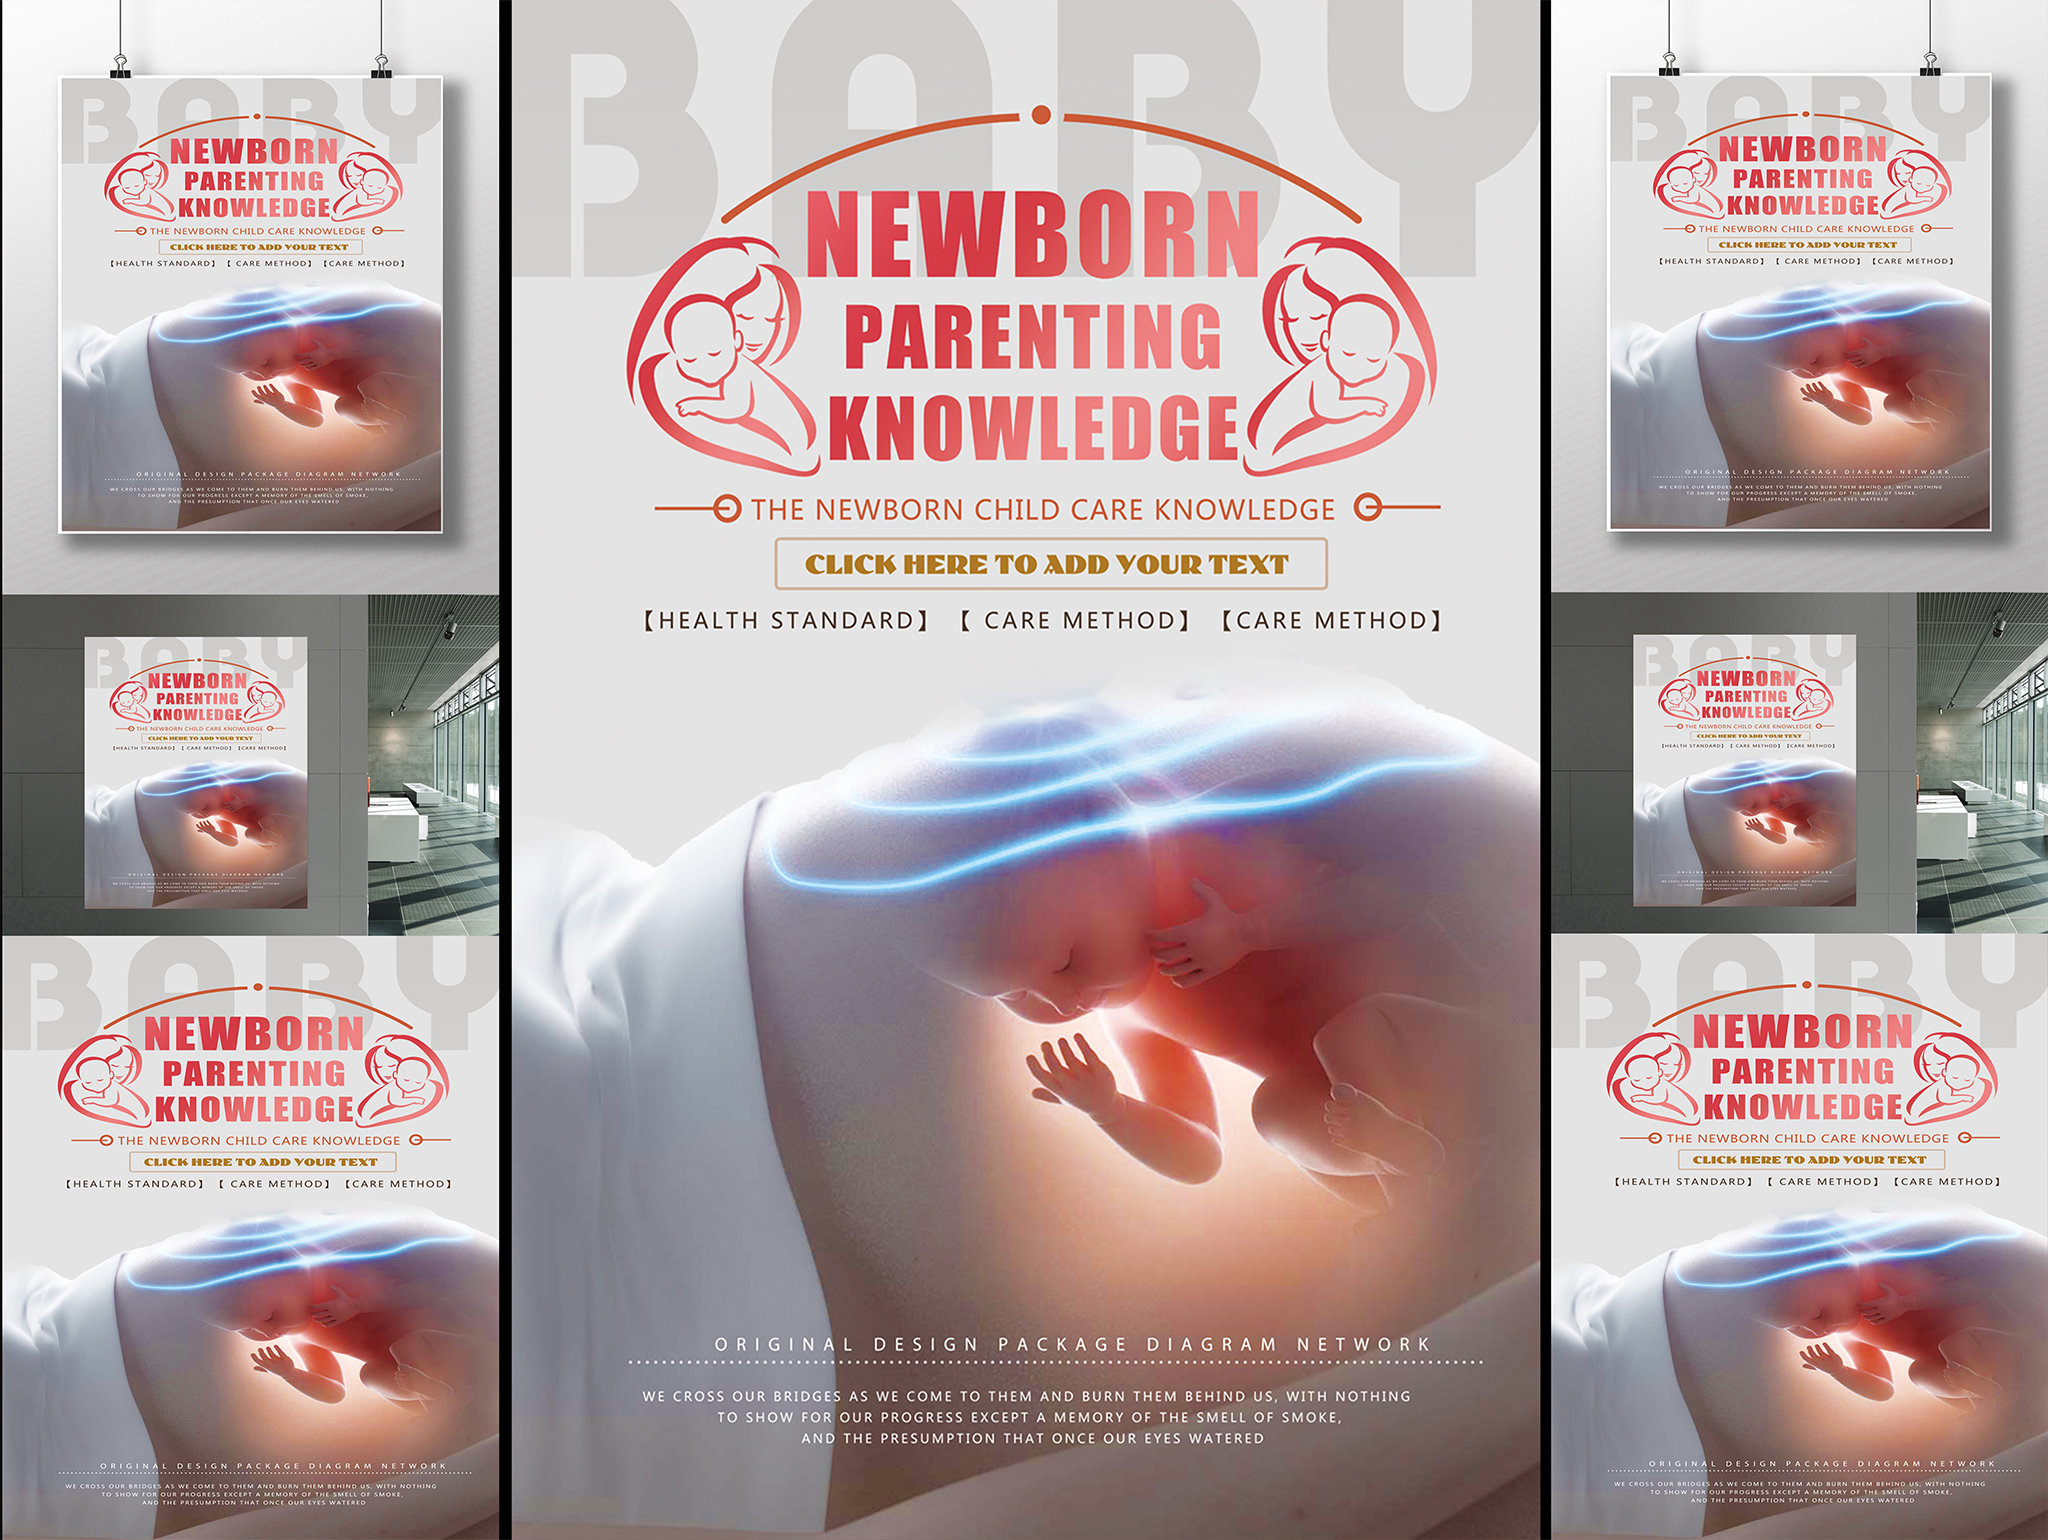 PSD file, poster or flyer, in the field of pregnancy and childbirth